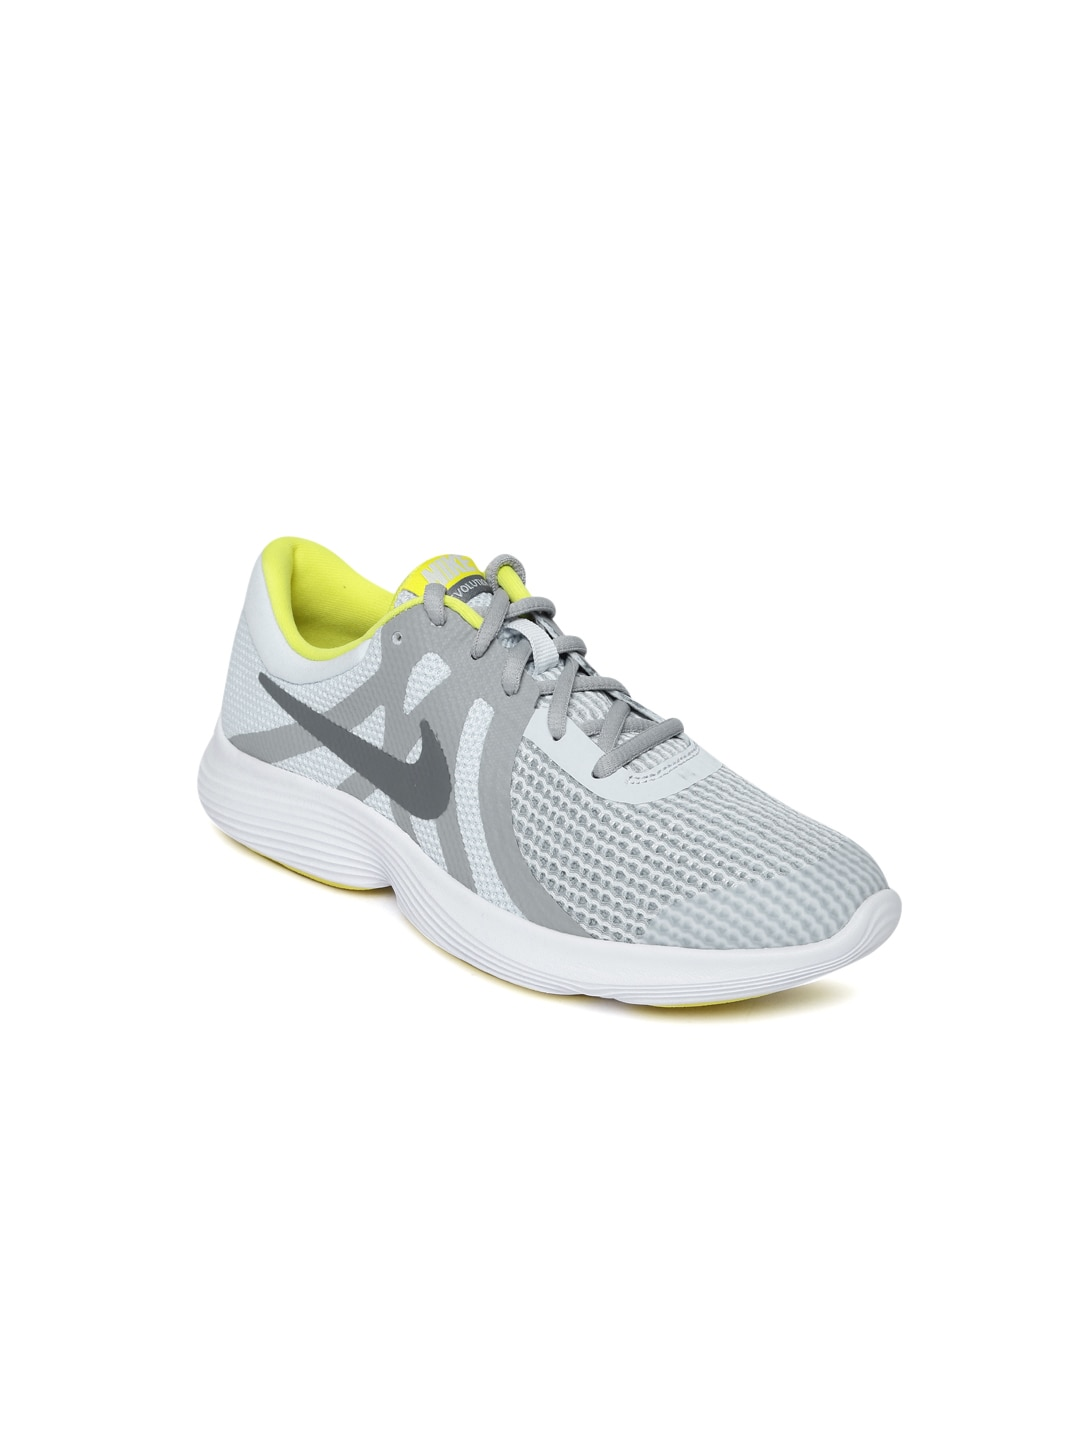 4b048d2aae8b71 Nike 4 Sports Shoes - Buy Nike 4 Sports Shoes online in India